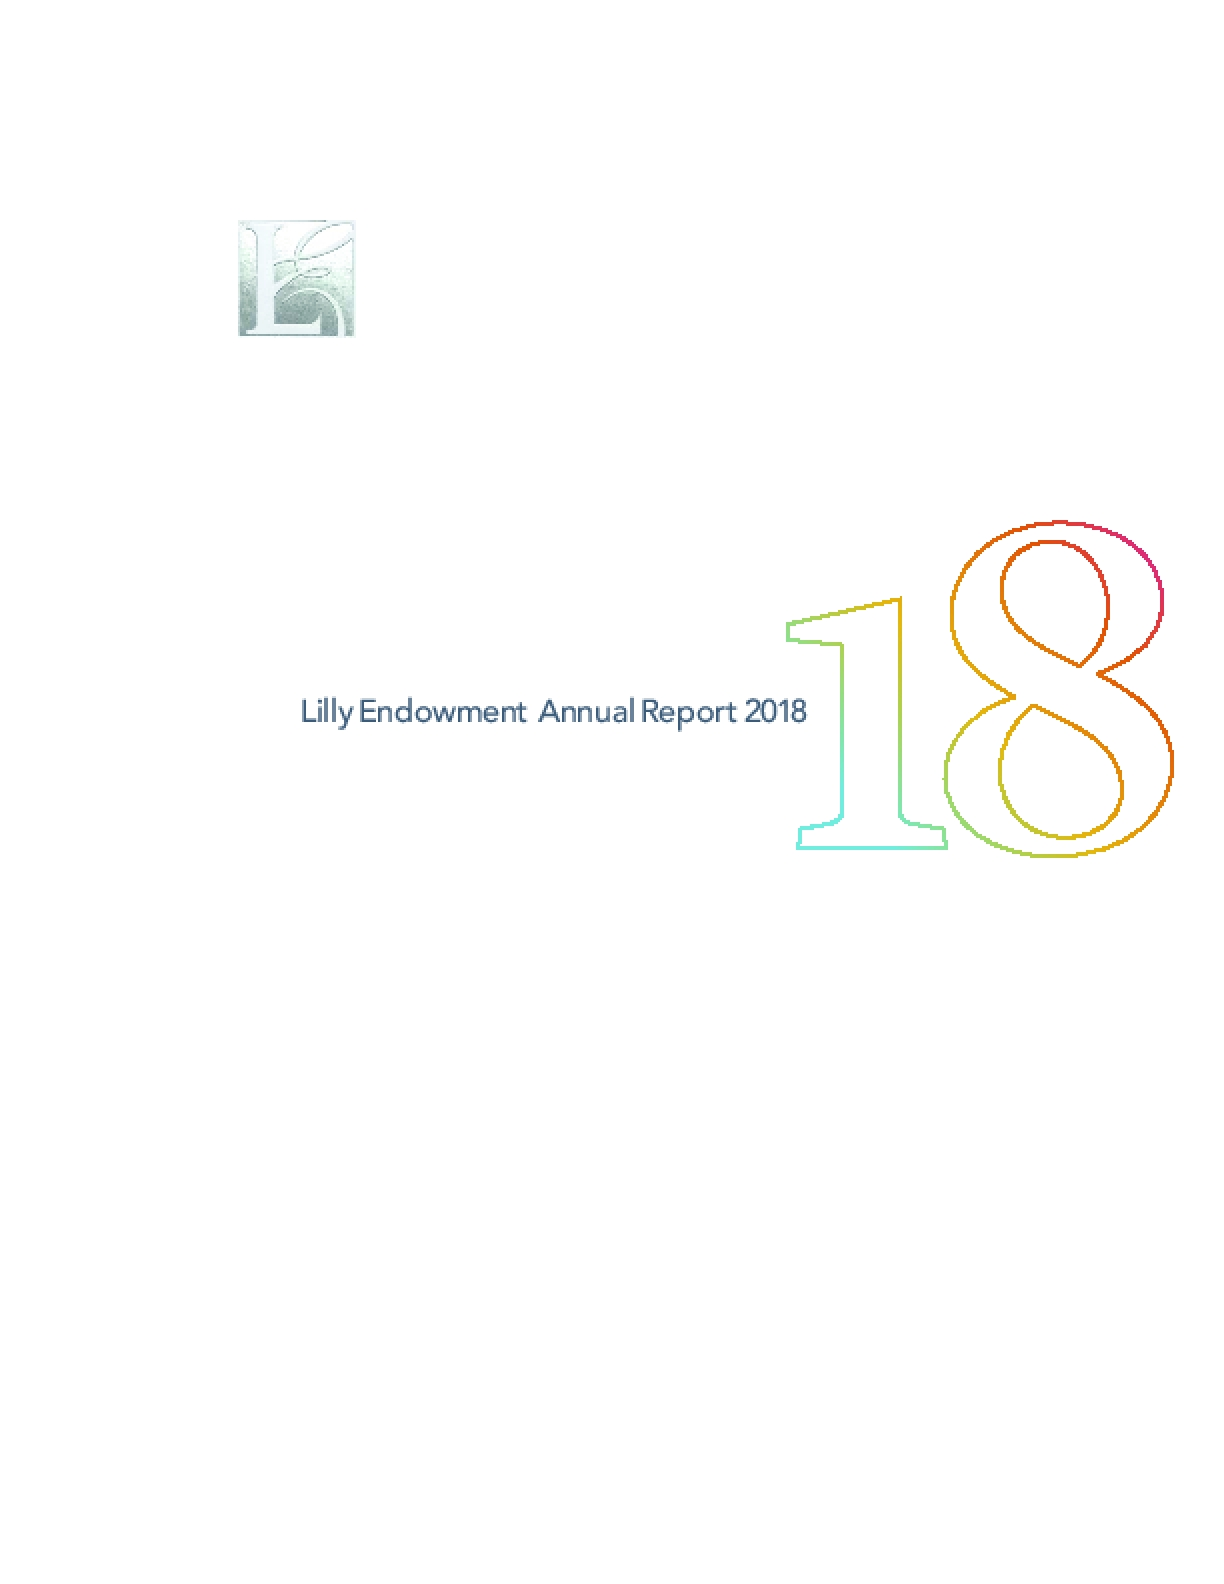 Lilly Endowment Annual Report 2018